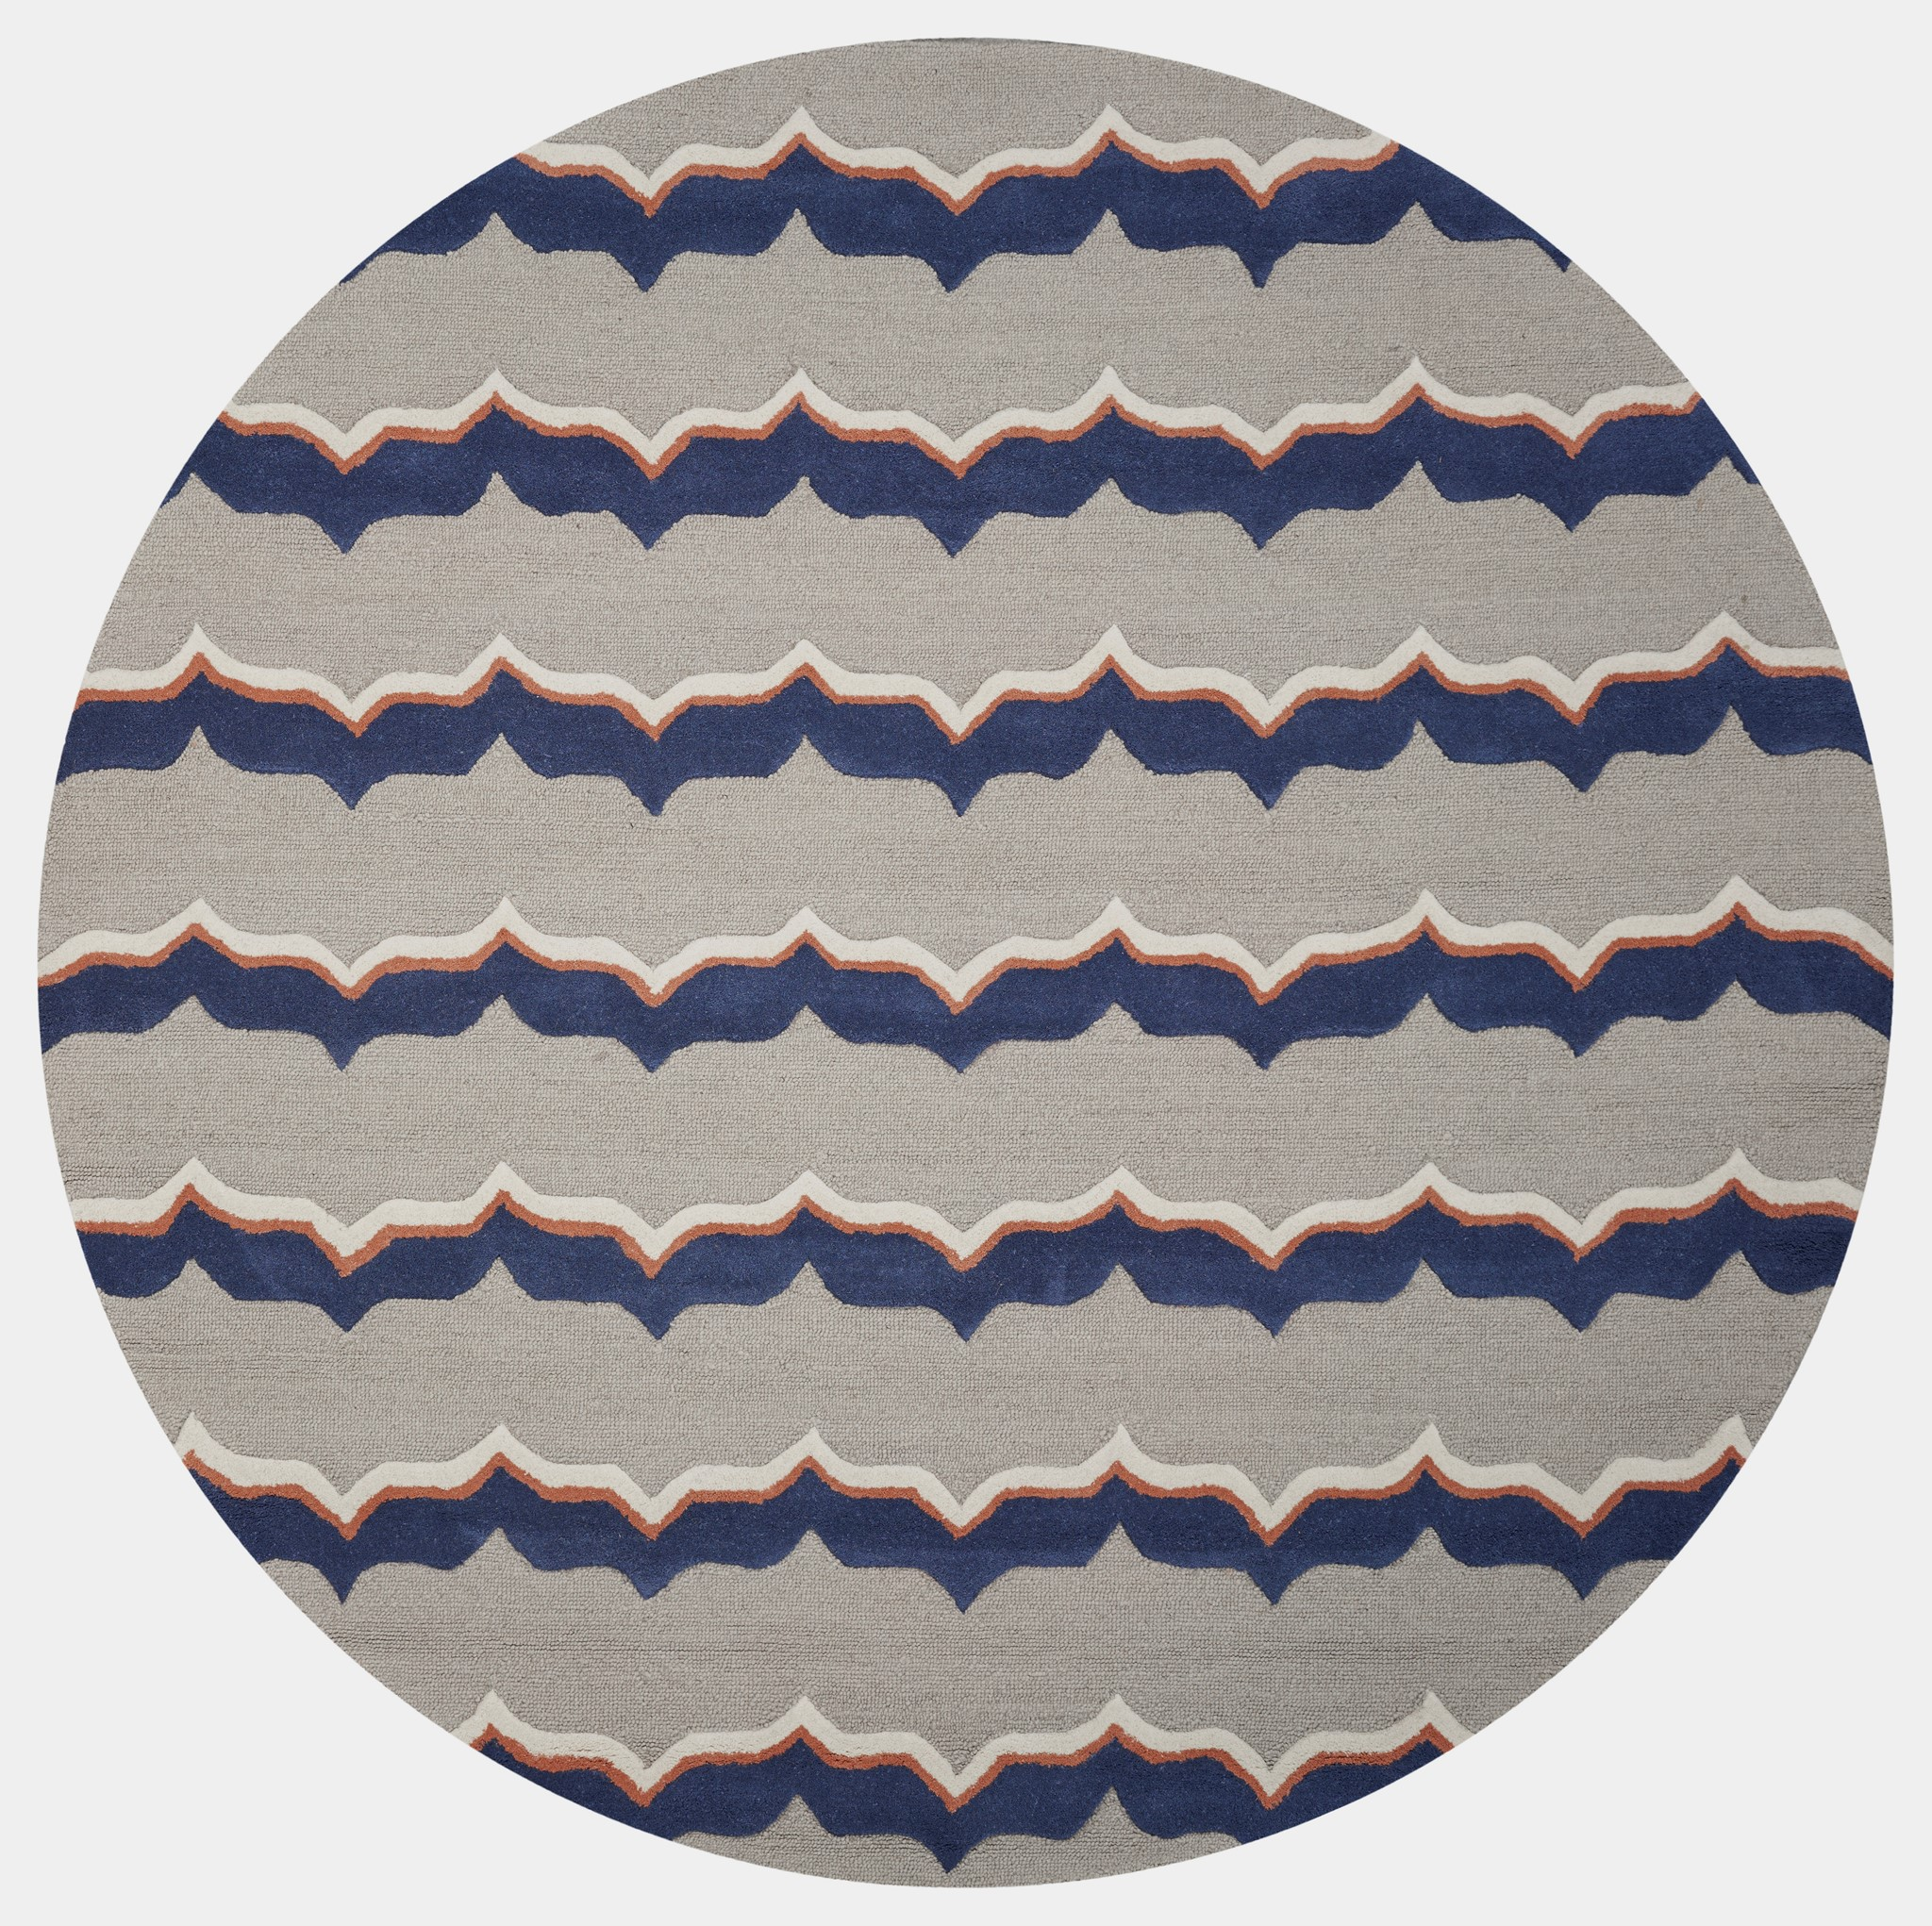 Soho 5030 Putty/Indigo Featherstone